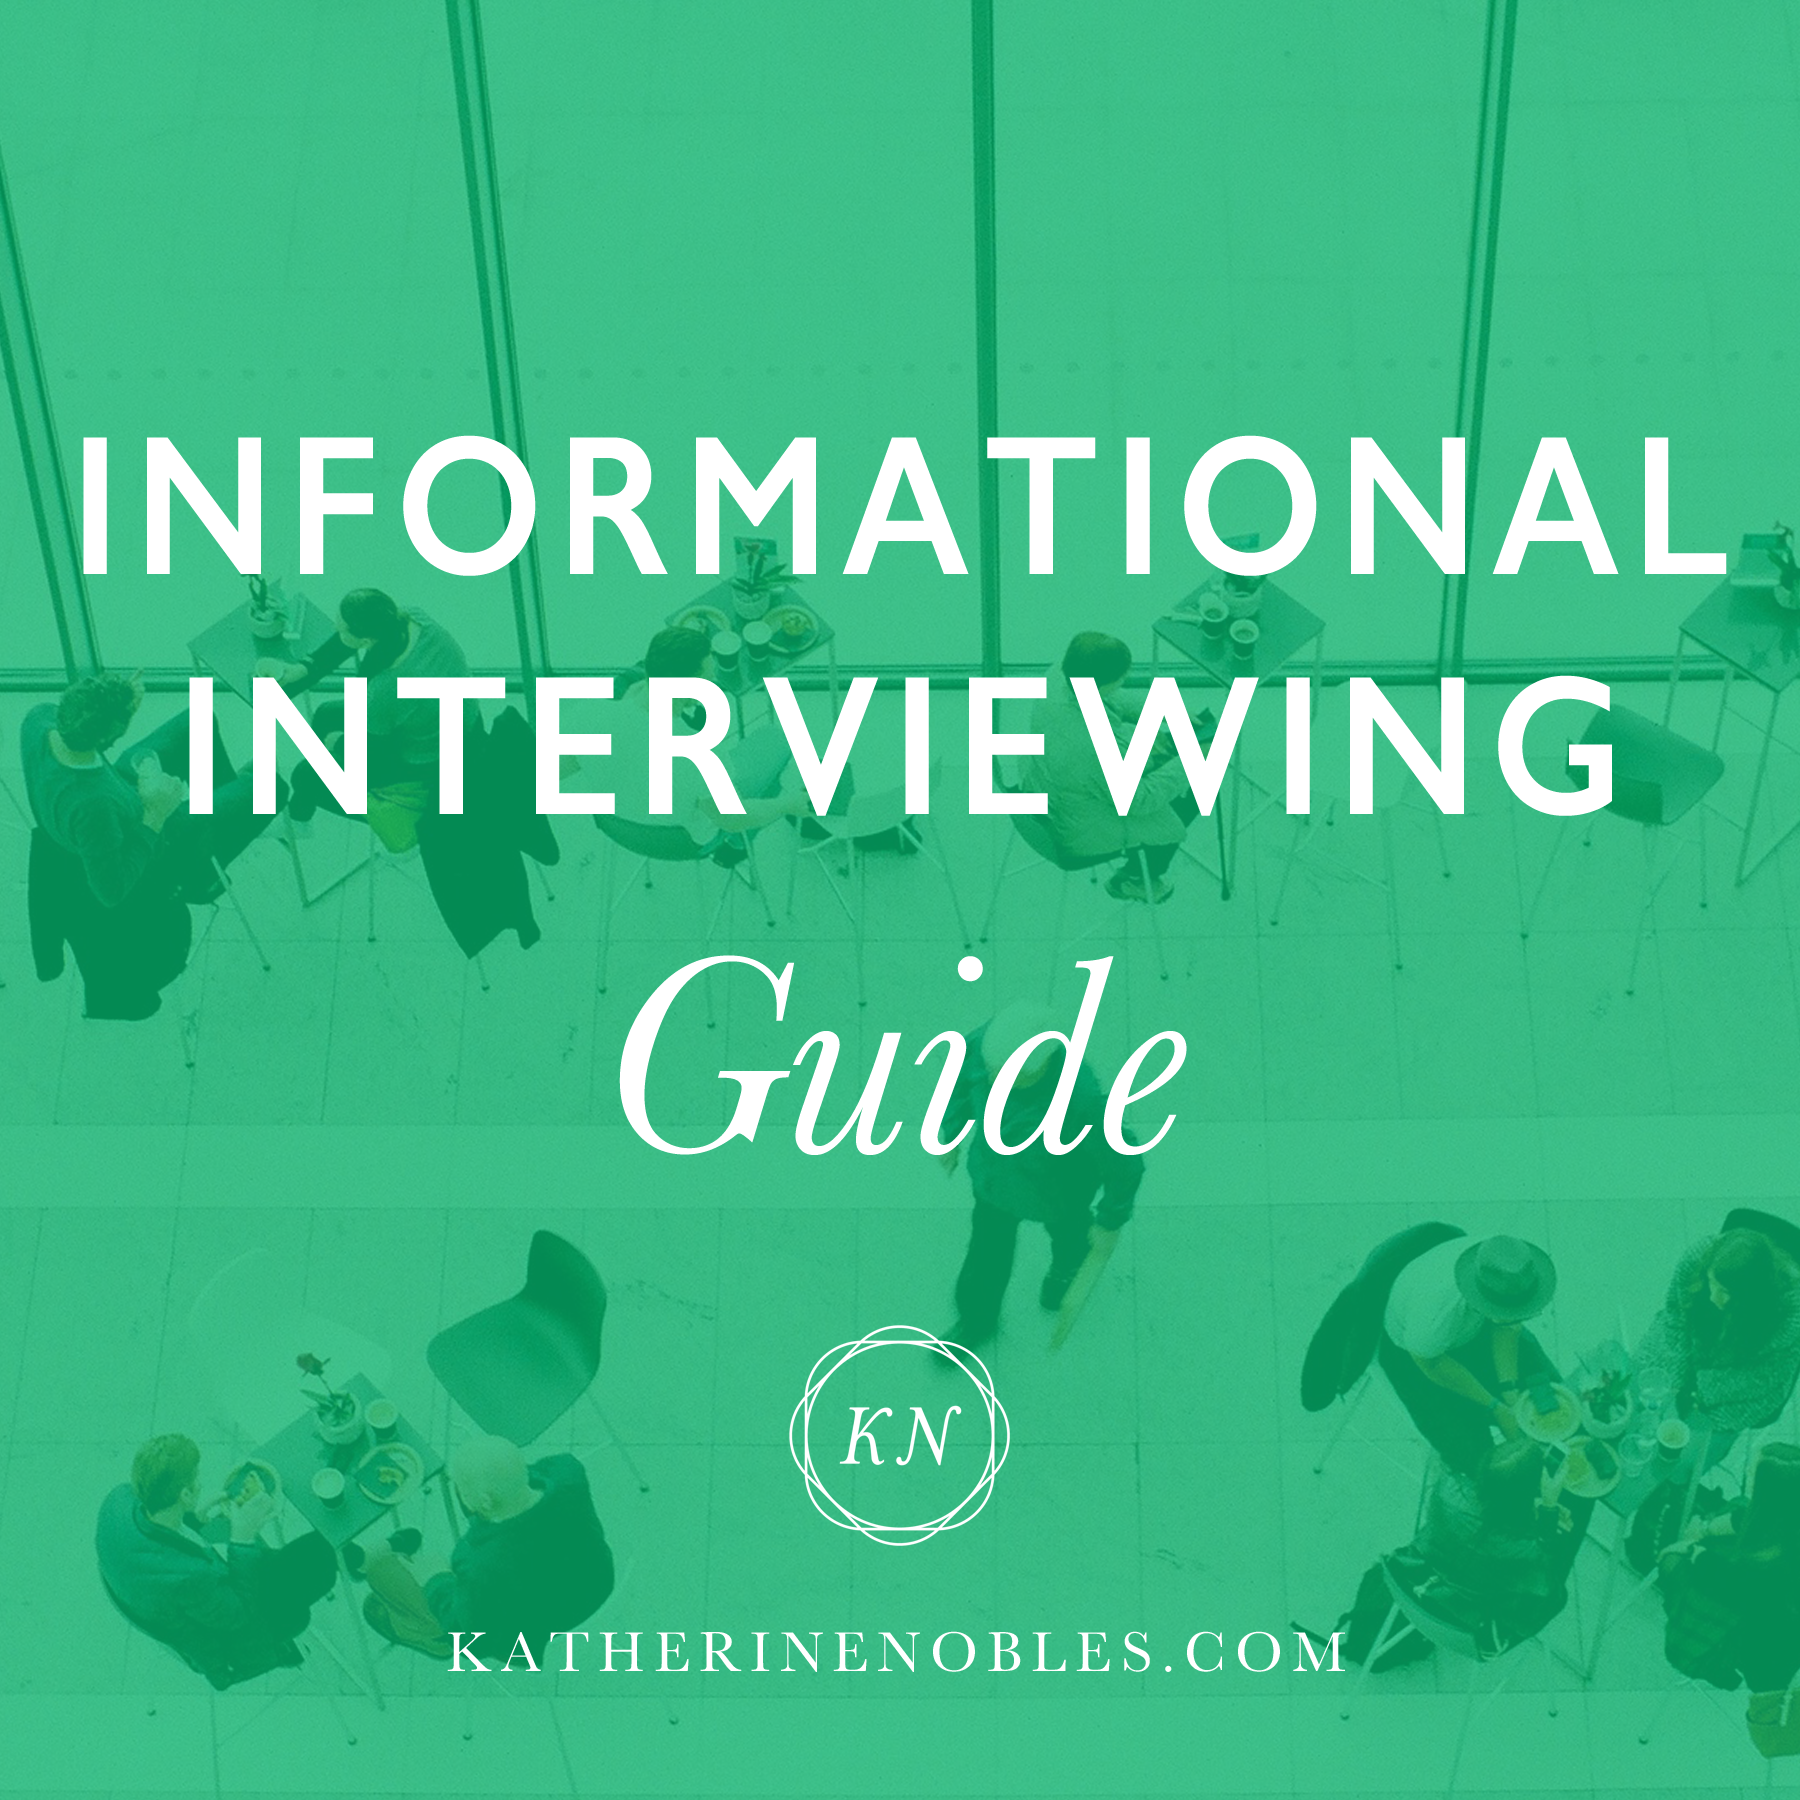 Informational Interviewing Guide